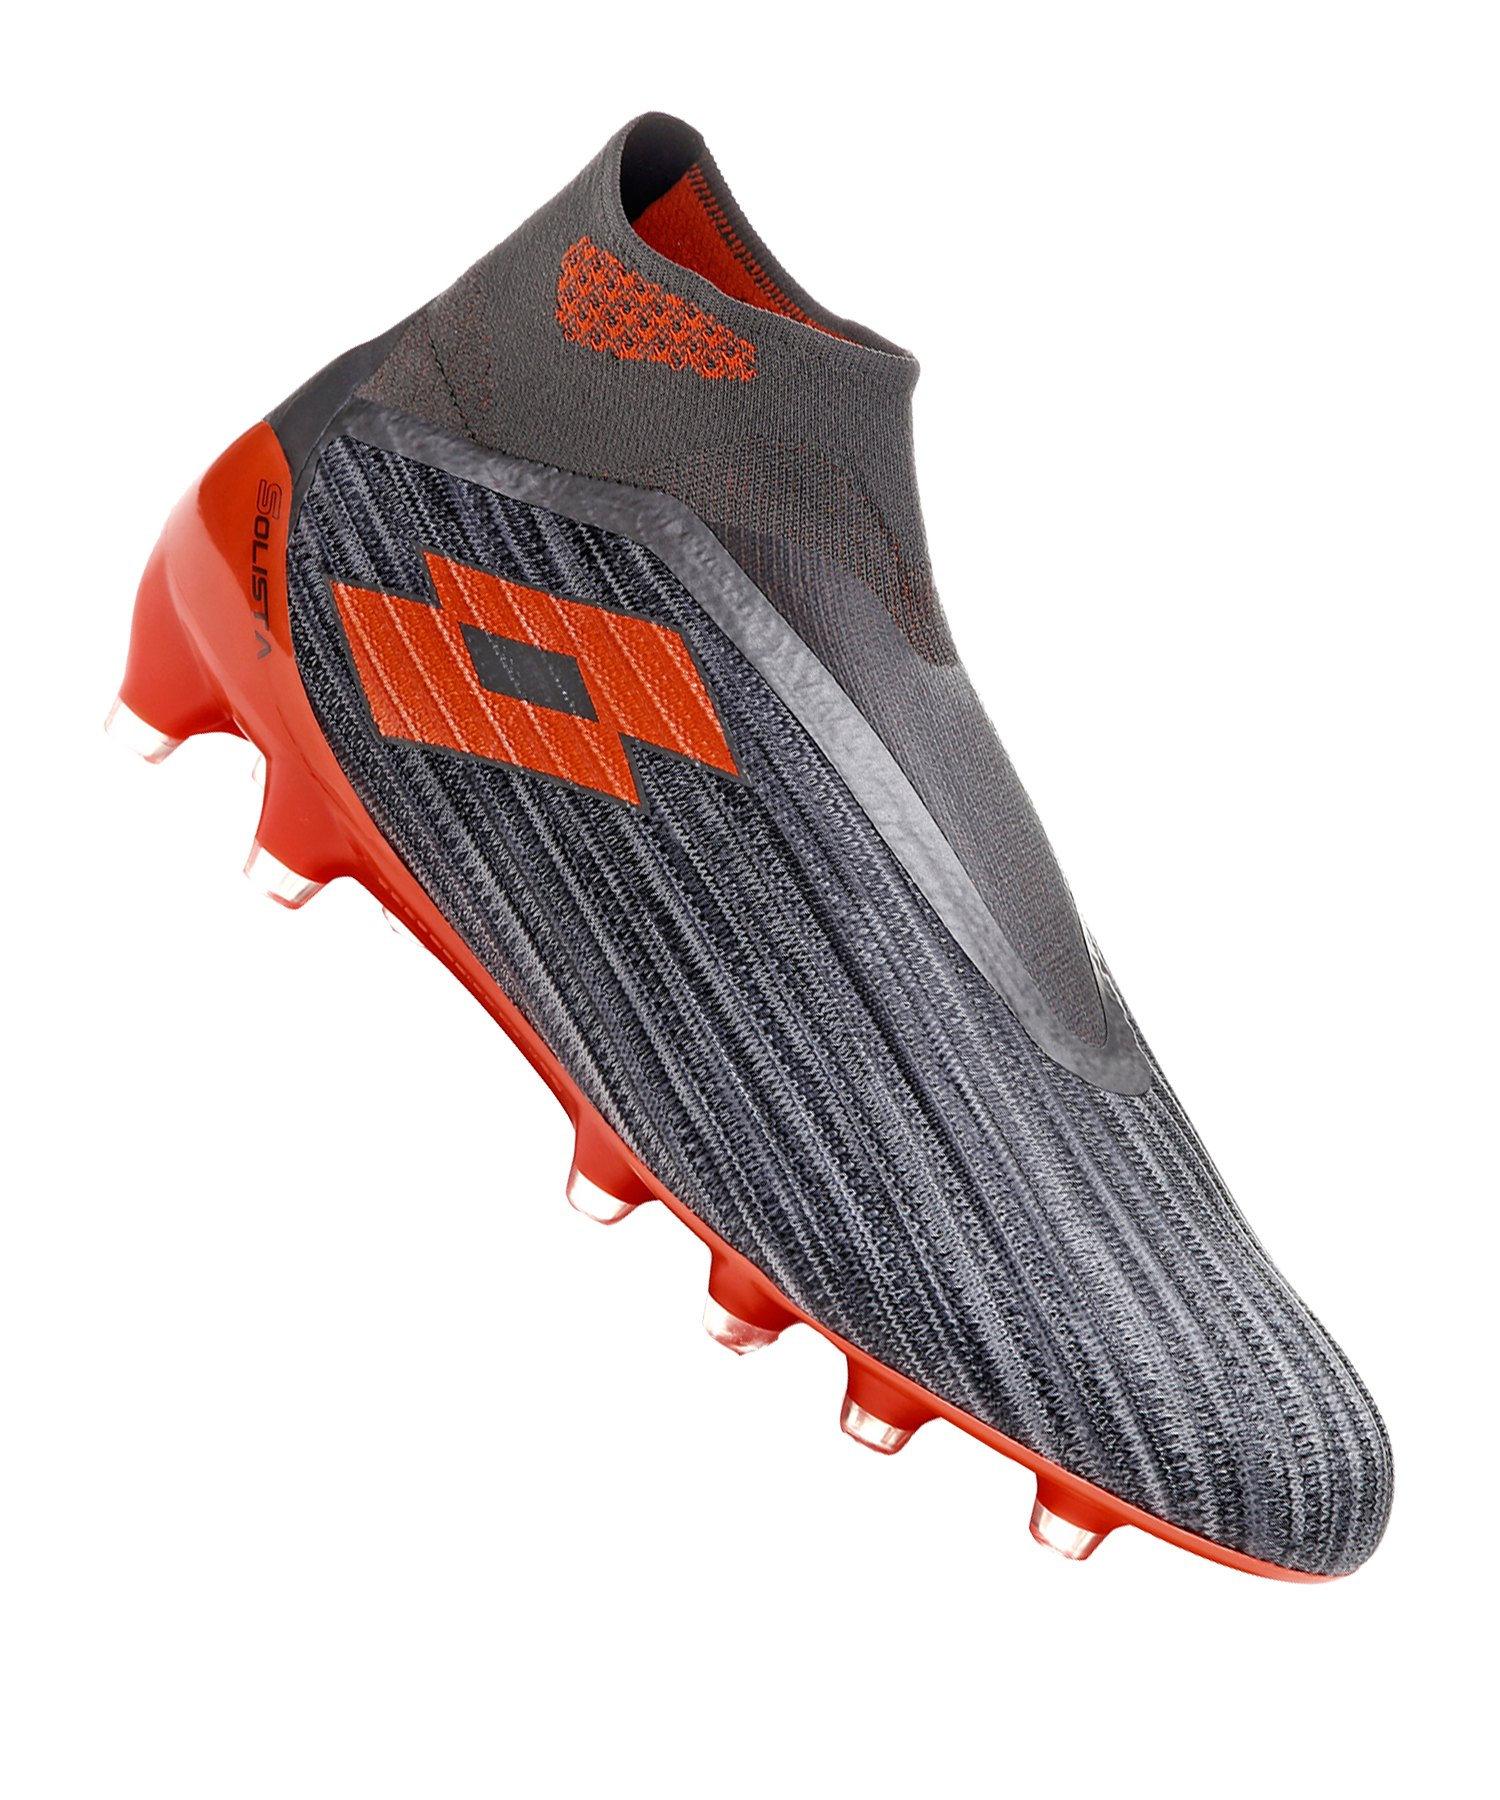 Lotto Solista 100 III Gravity FG Grau Orange F5JK - grau